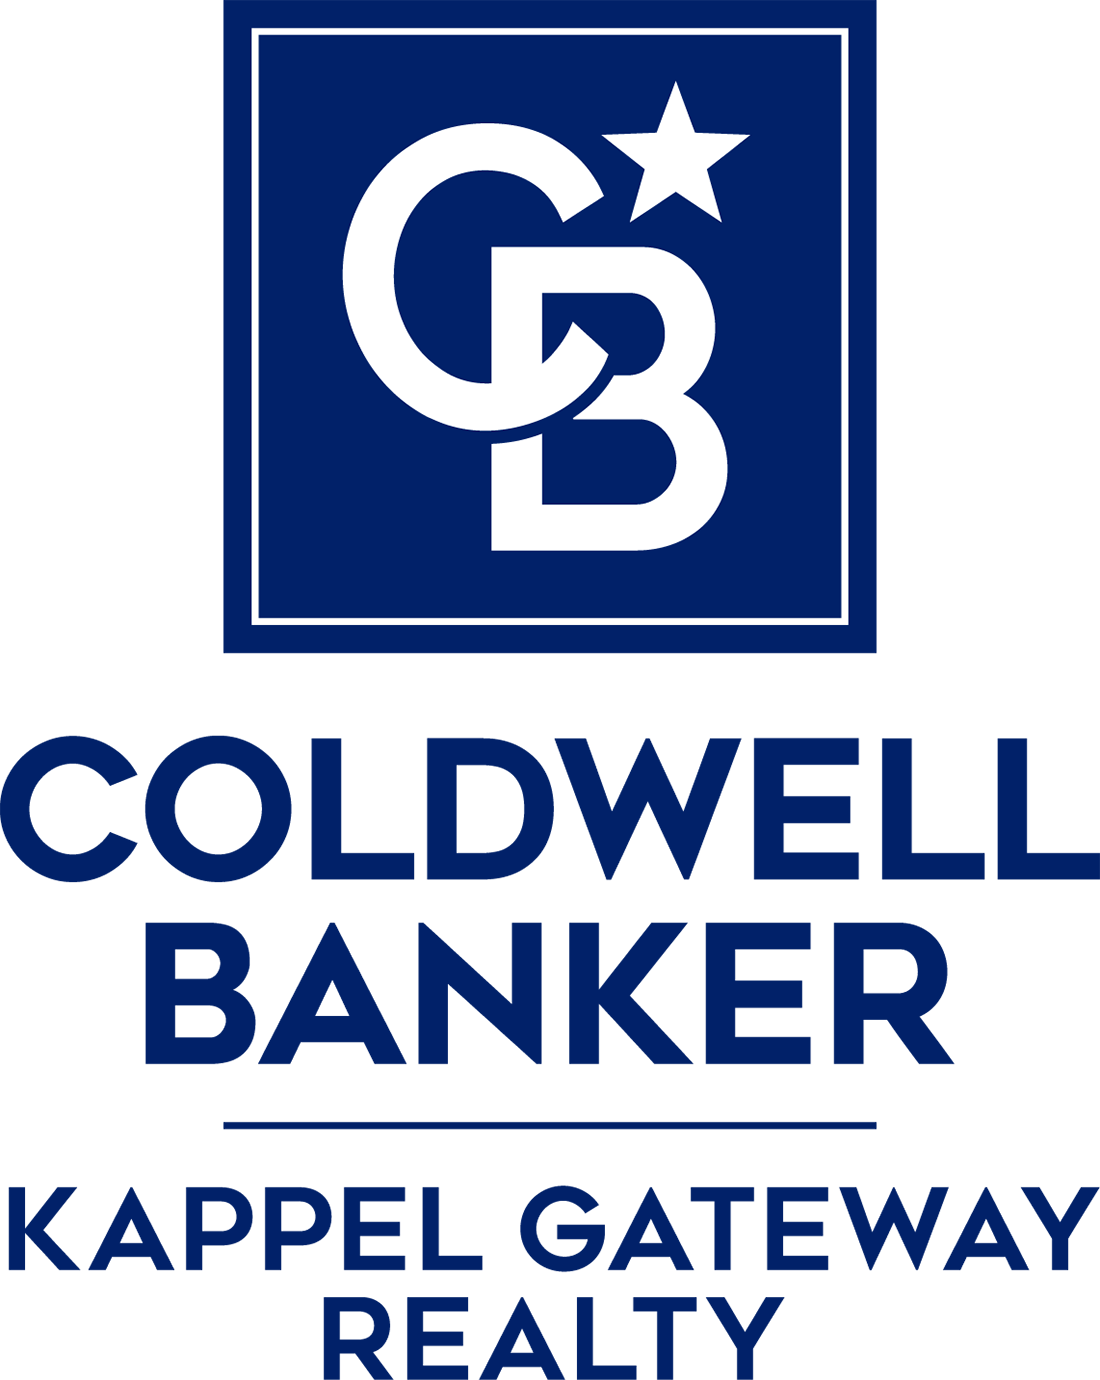 Coldwell Banker Kappel Gateway Realty